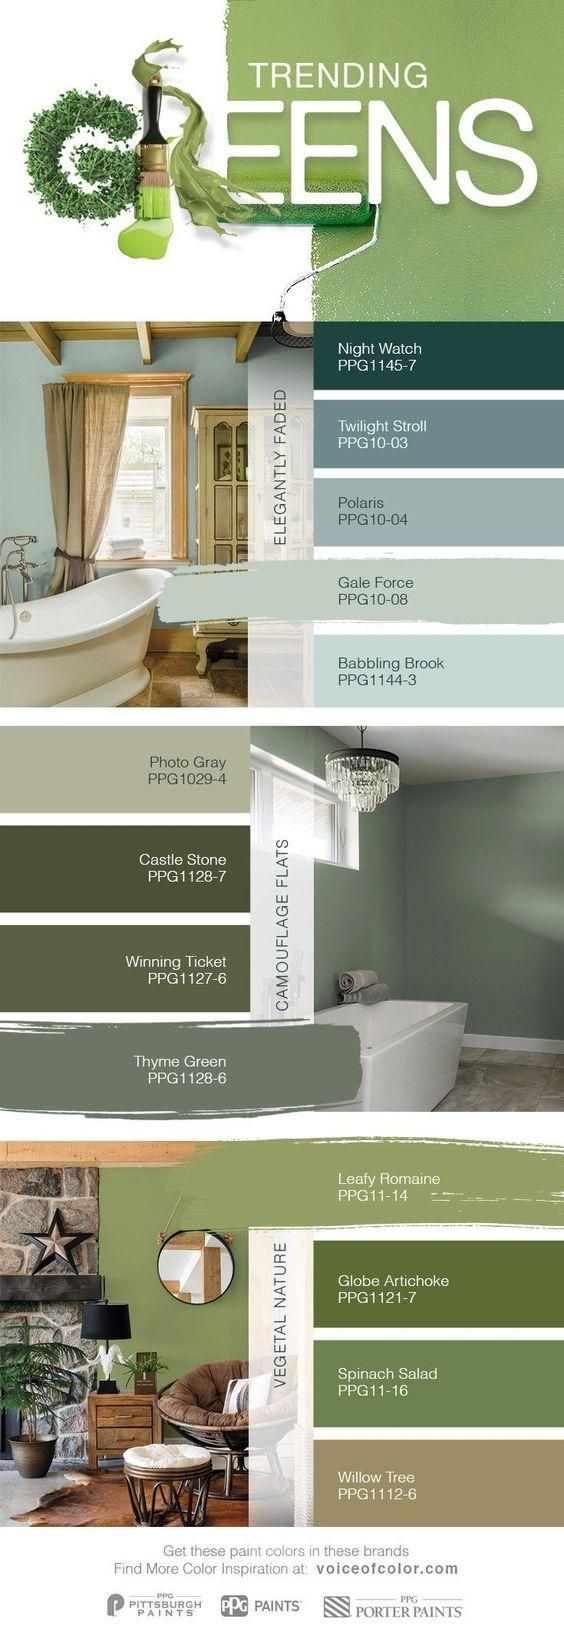 53 Best Pottery Barn Paint Collection Images On Pinterest